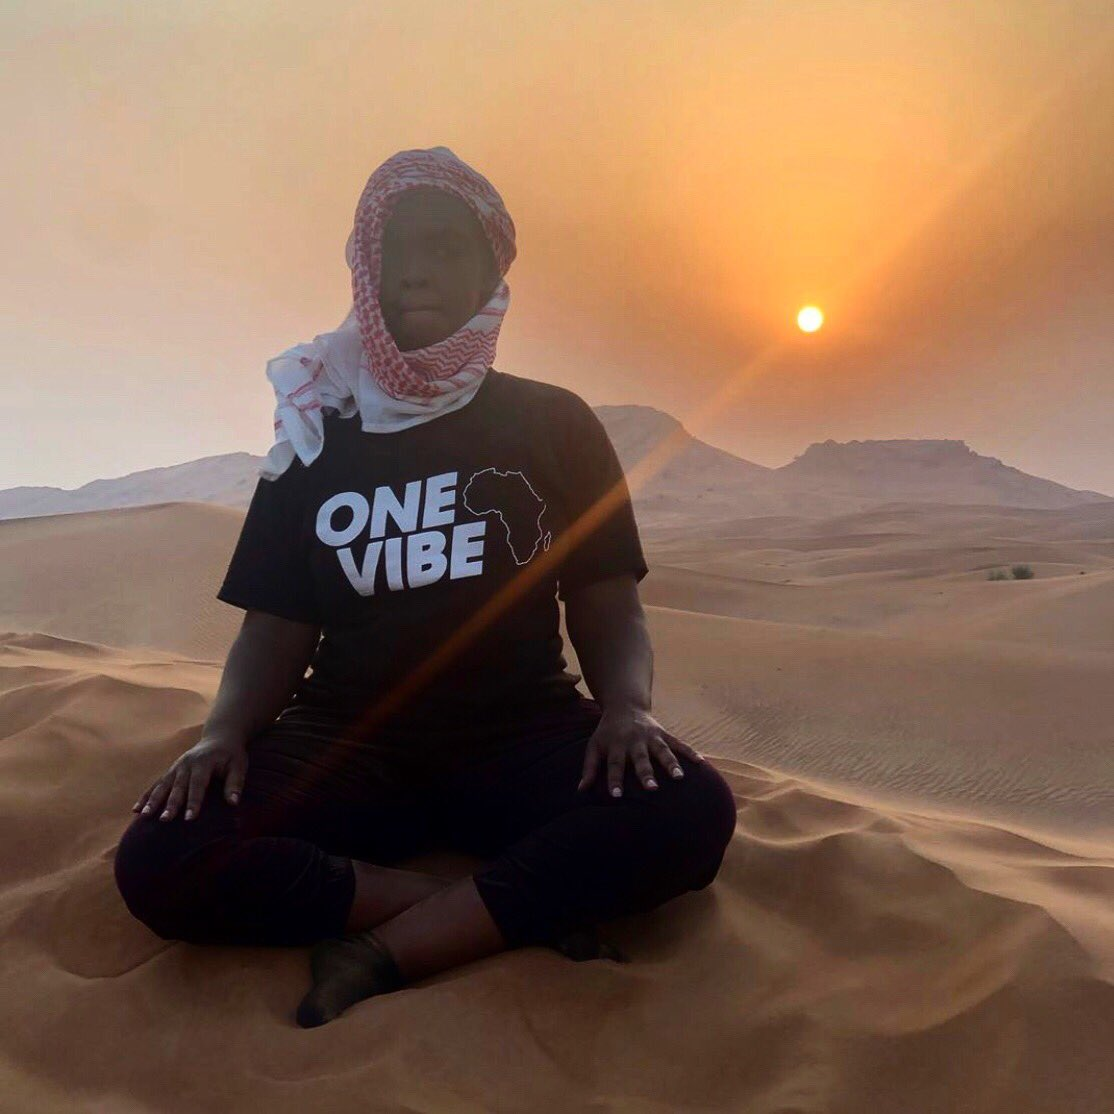 @OneVibeAfrica swag is in #Dubai #IamOneVibeAfrica where are you rocking these amazing swag from?